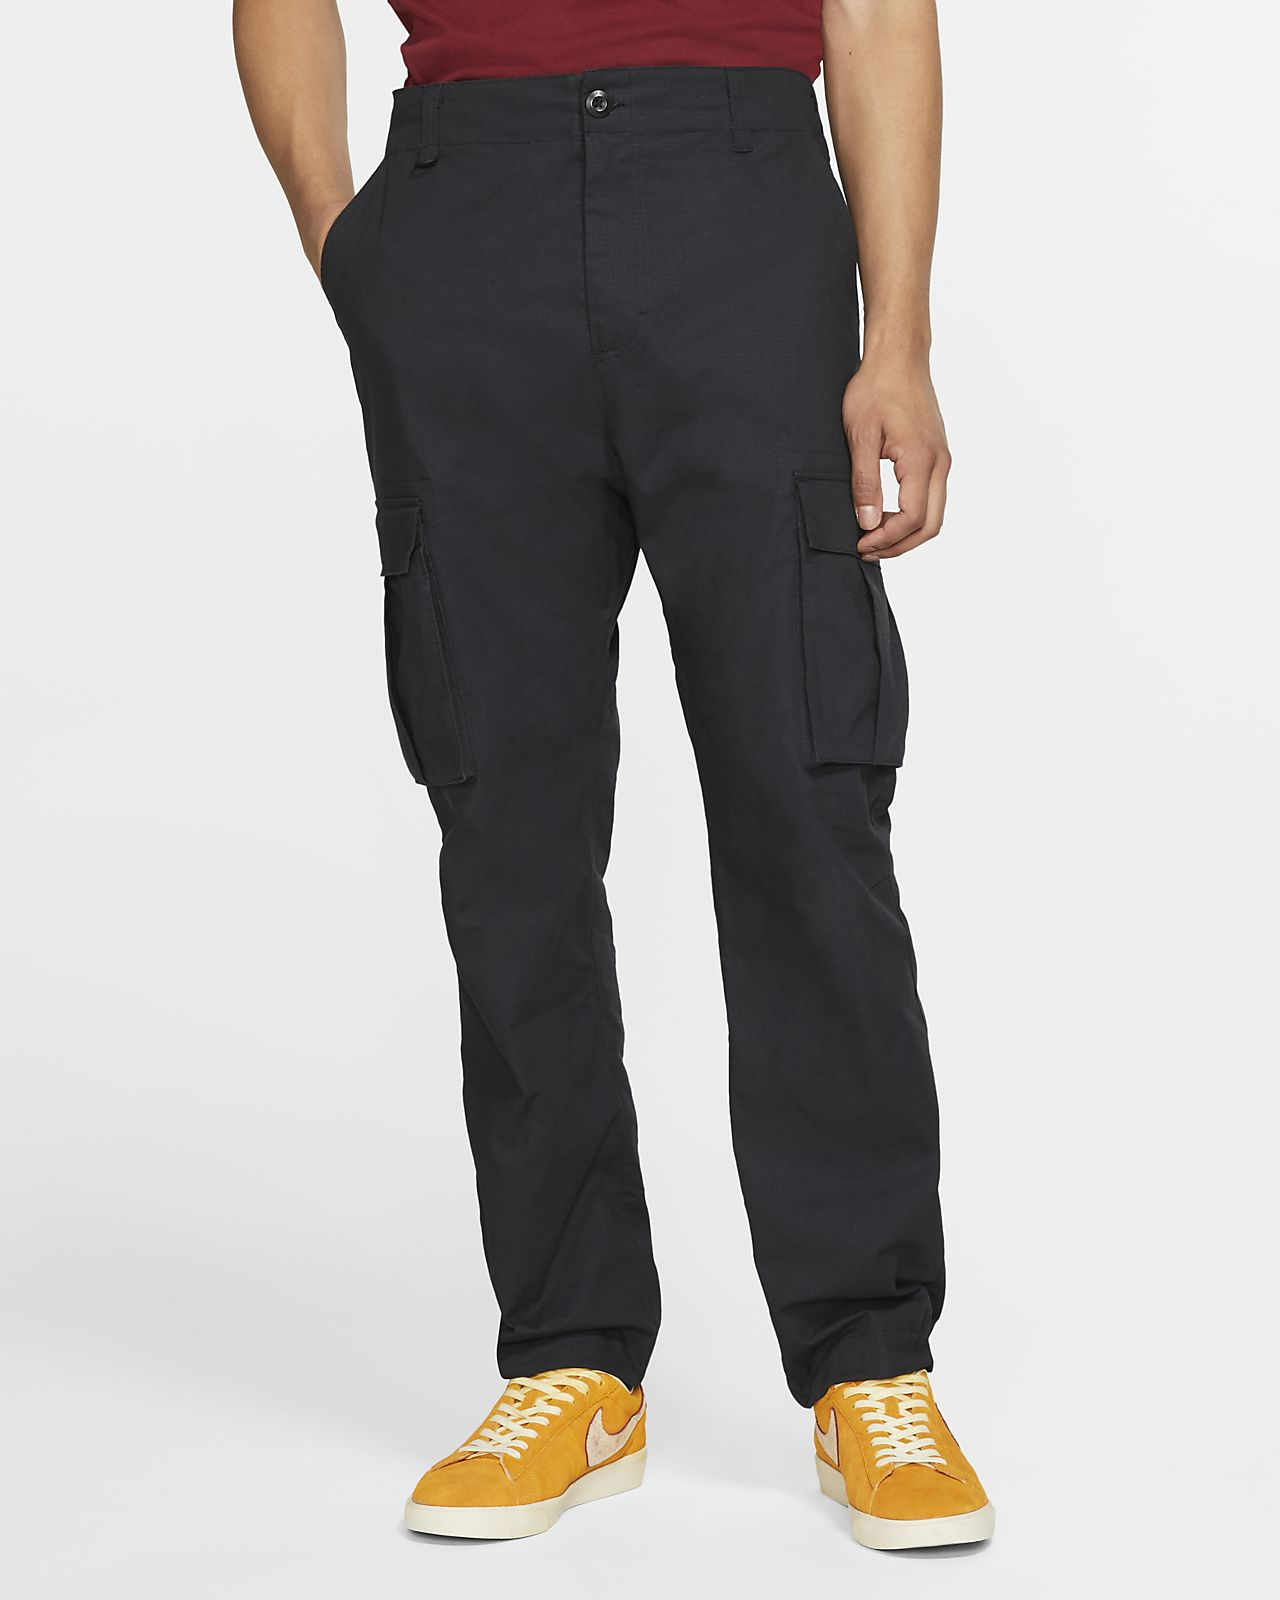 Nike SB Flex FTM Men's Skate Trousers